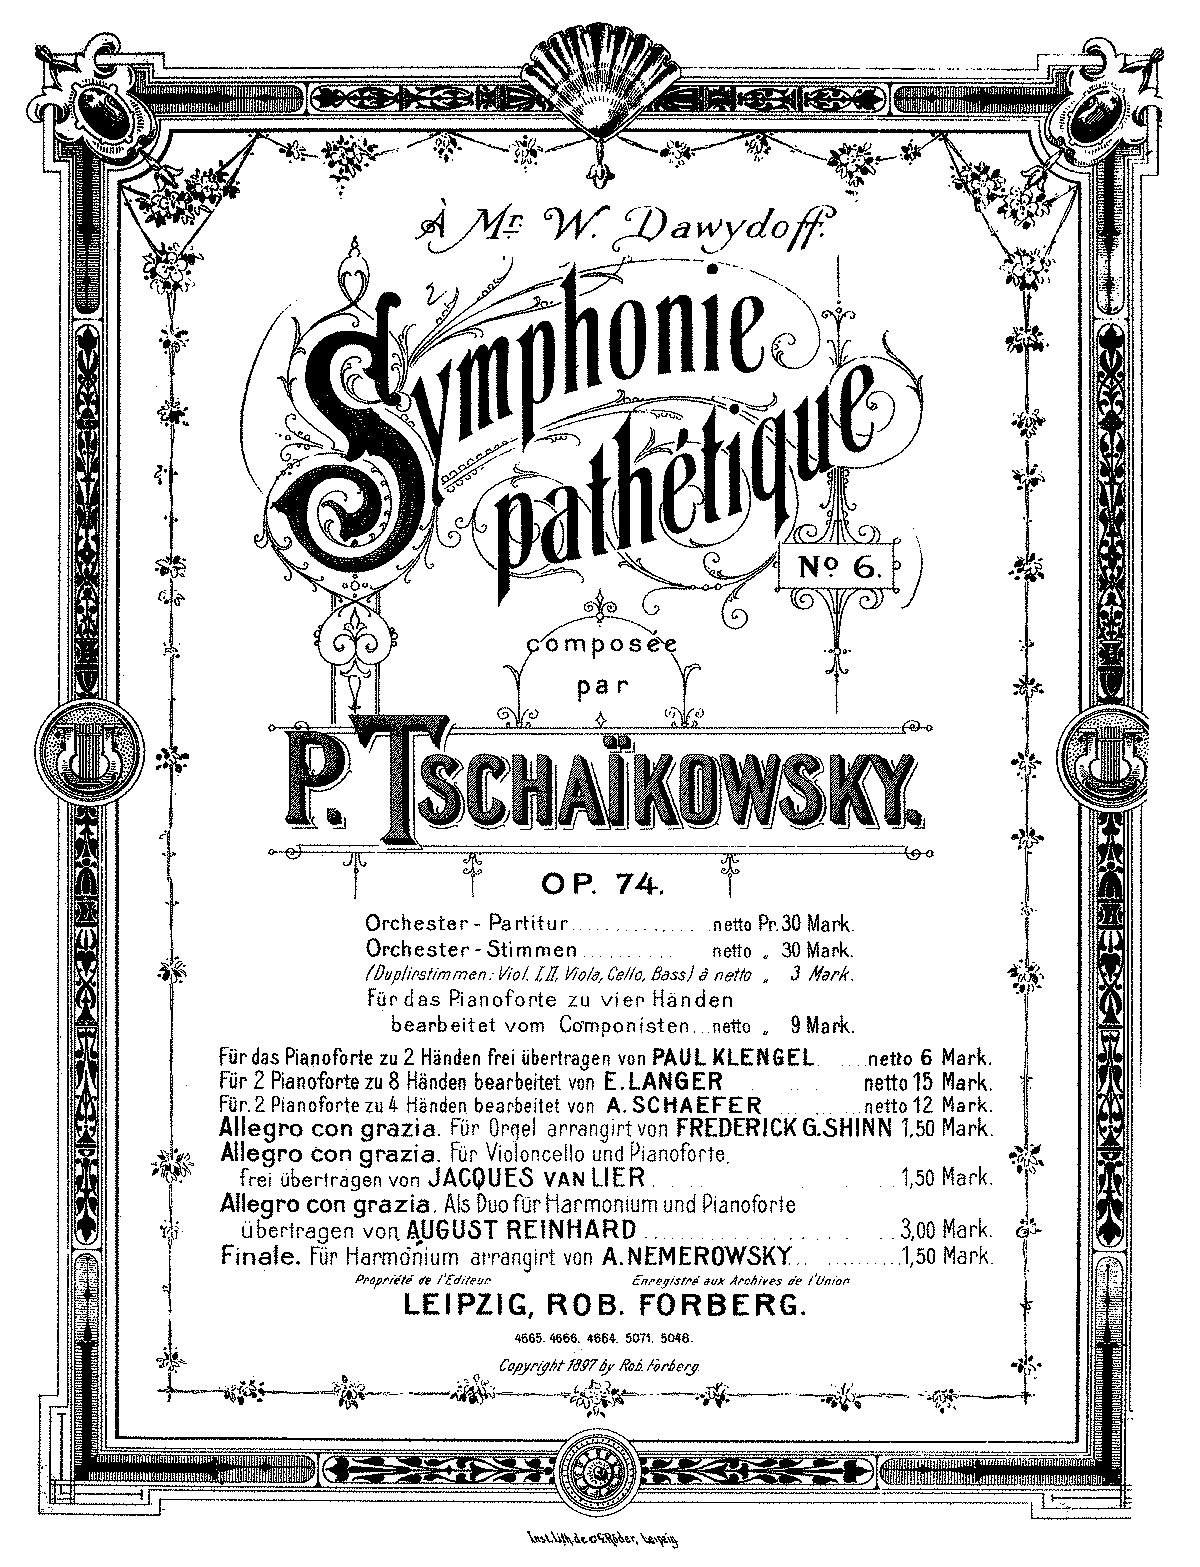 PMLP02511-Tchaikovsky - 2nd Mov of Symphony No6 (Pathetique) Op74 (Lier) for Cello and Piano score.pdf